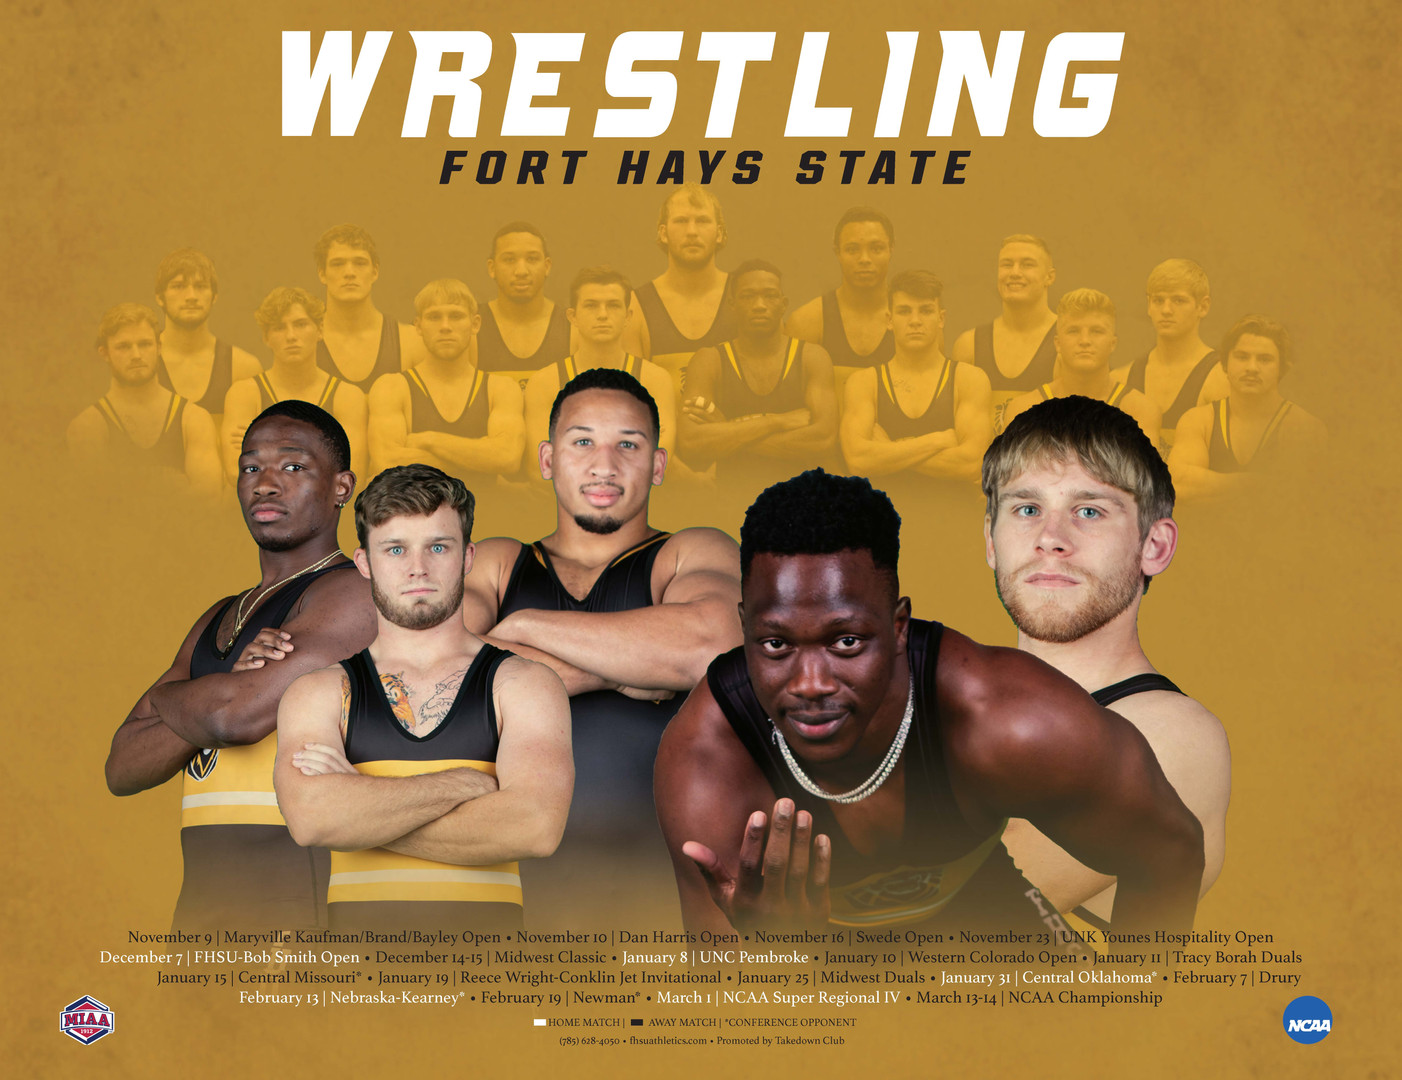 WrestlingSchedulePoster.jpg